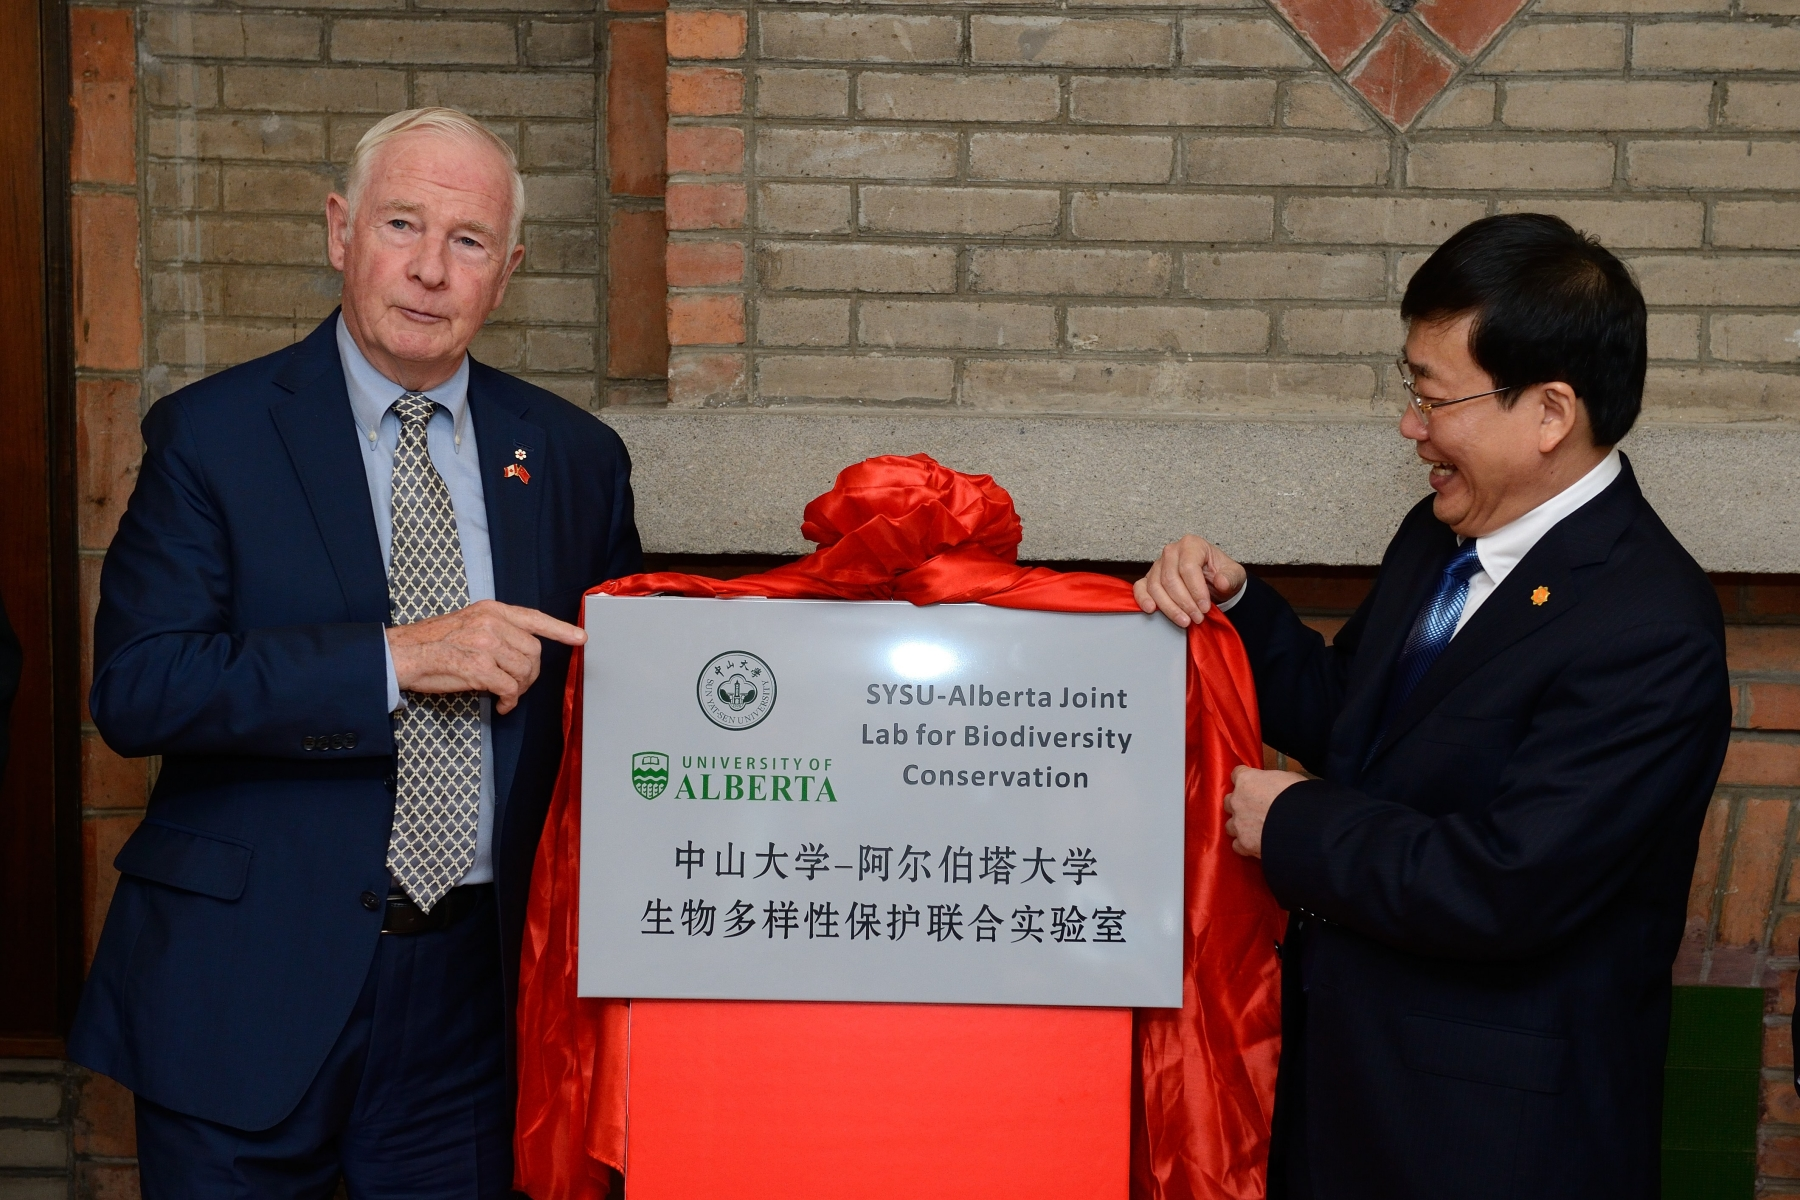 Shortly thereafter, the Governor General and the President of Sun Yat-sen University unveiled a plaque to commemorate the establishment of a joint life sciences lab between both universities.